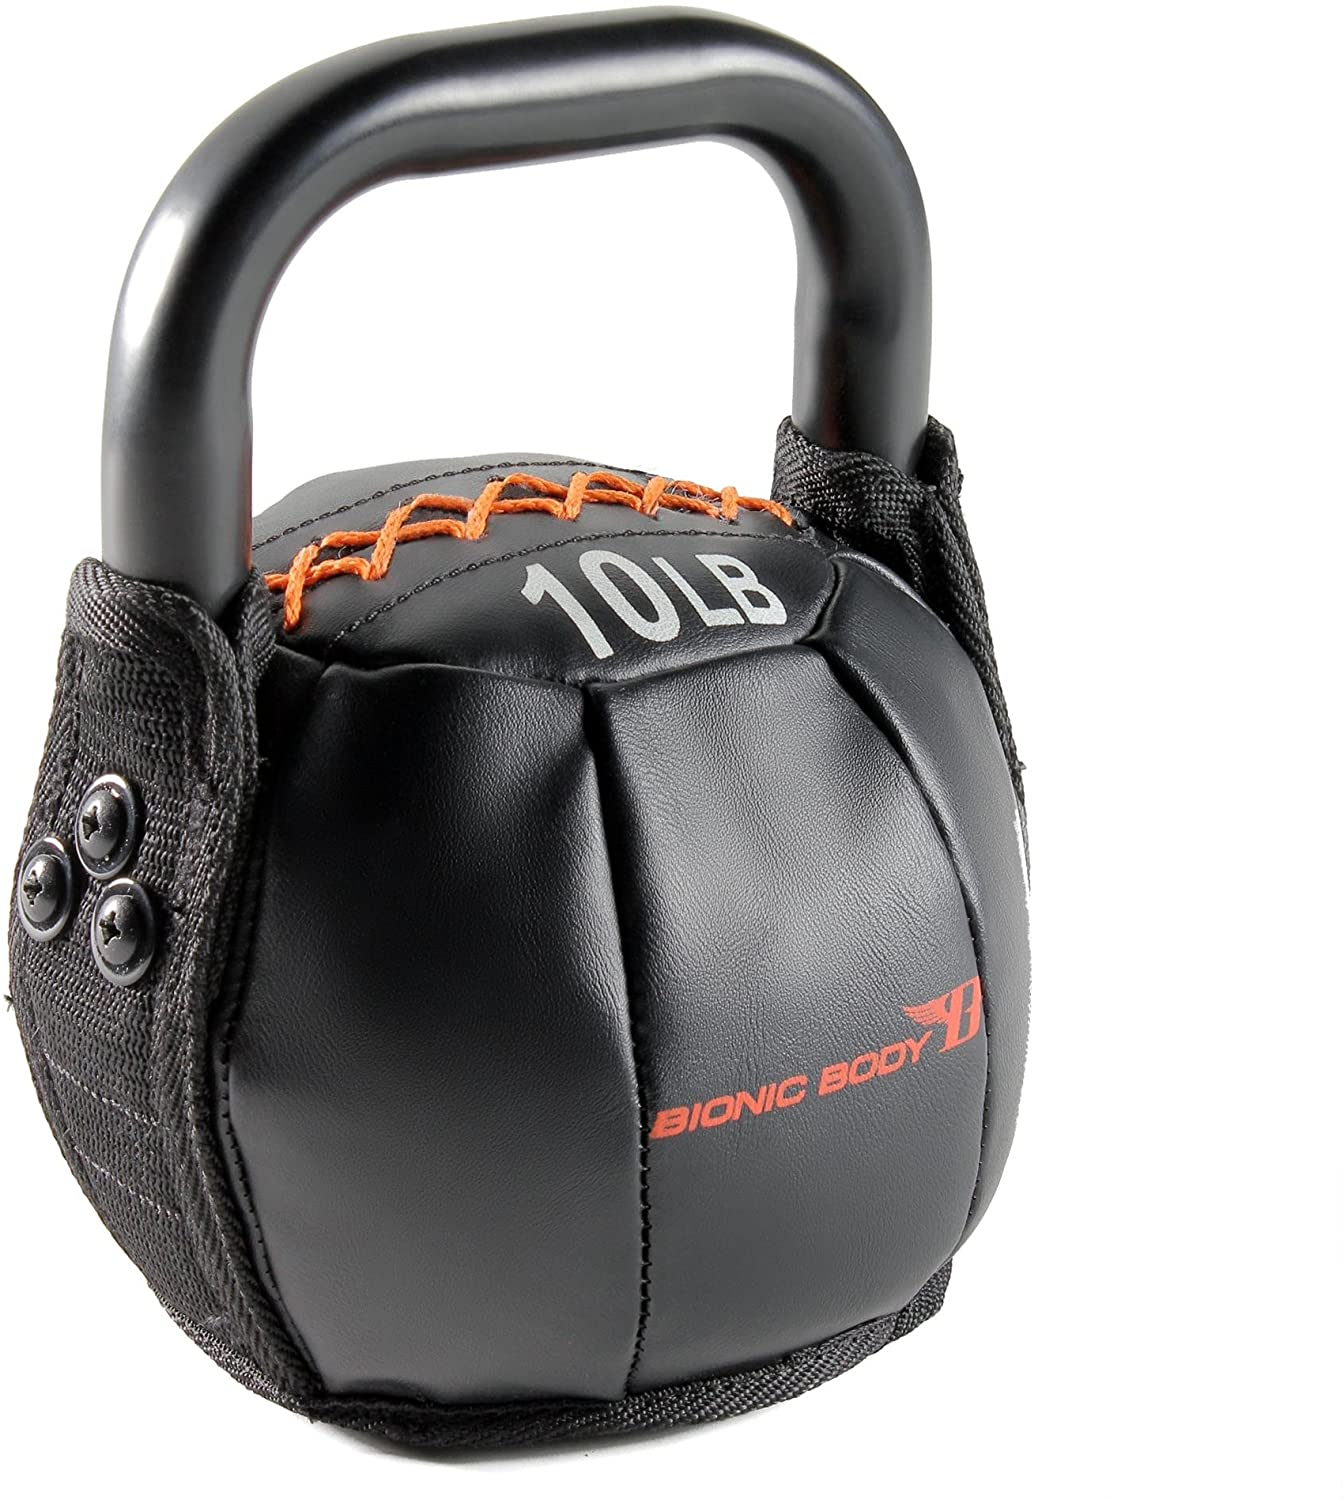 3.Bionic Body Soft Kettlebell with Handle